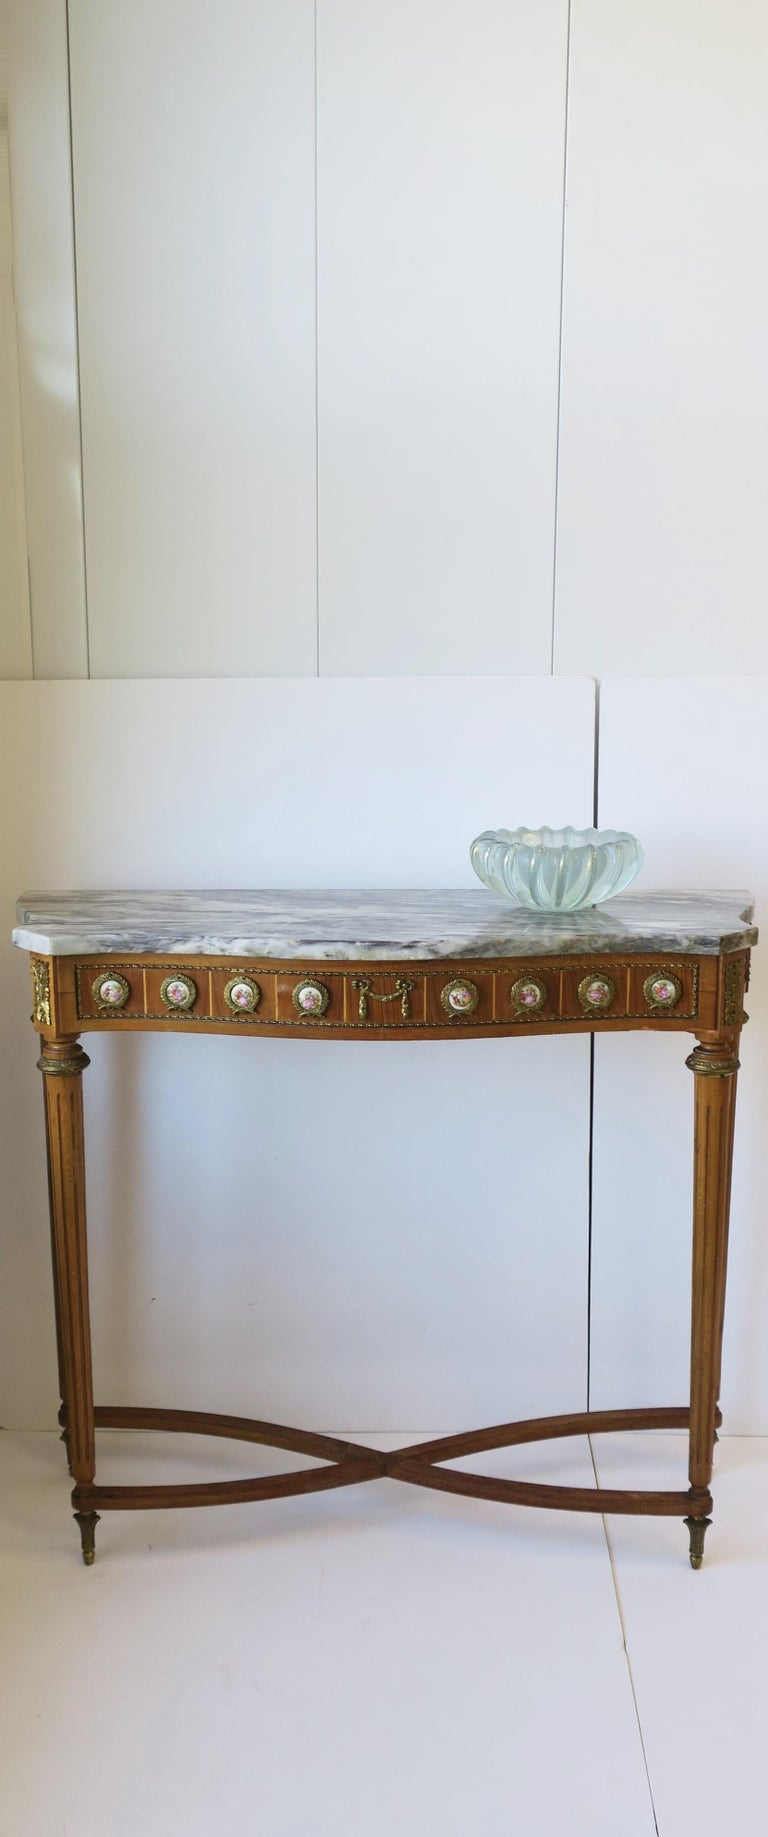 Neoclassical Marble and Brass Console Table For Sale 1